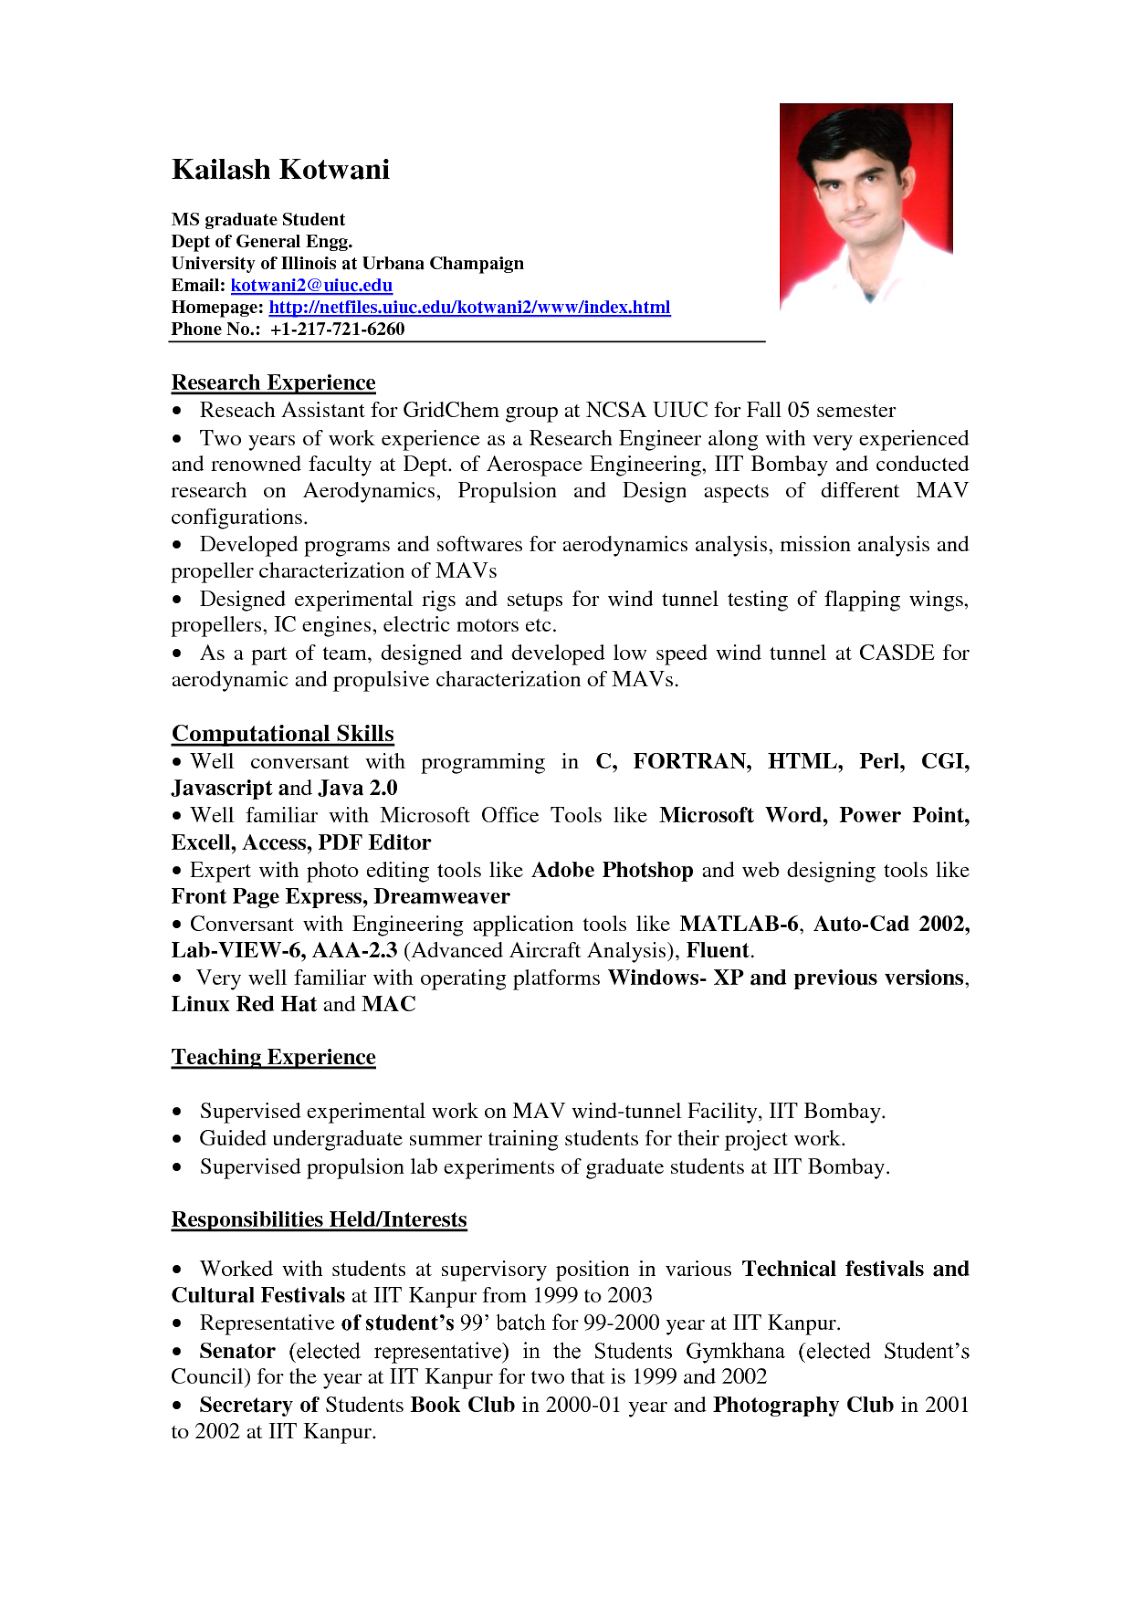 100+ [ Sample Resume For Mis Executive In India ] | A Resume ...